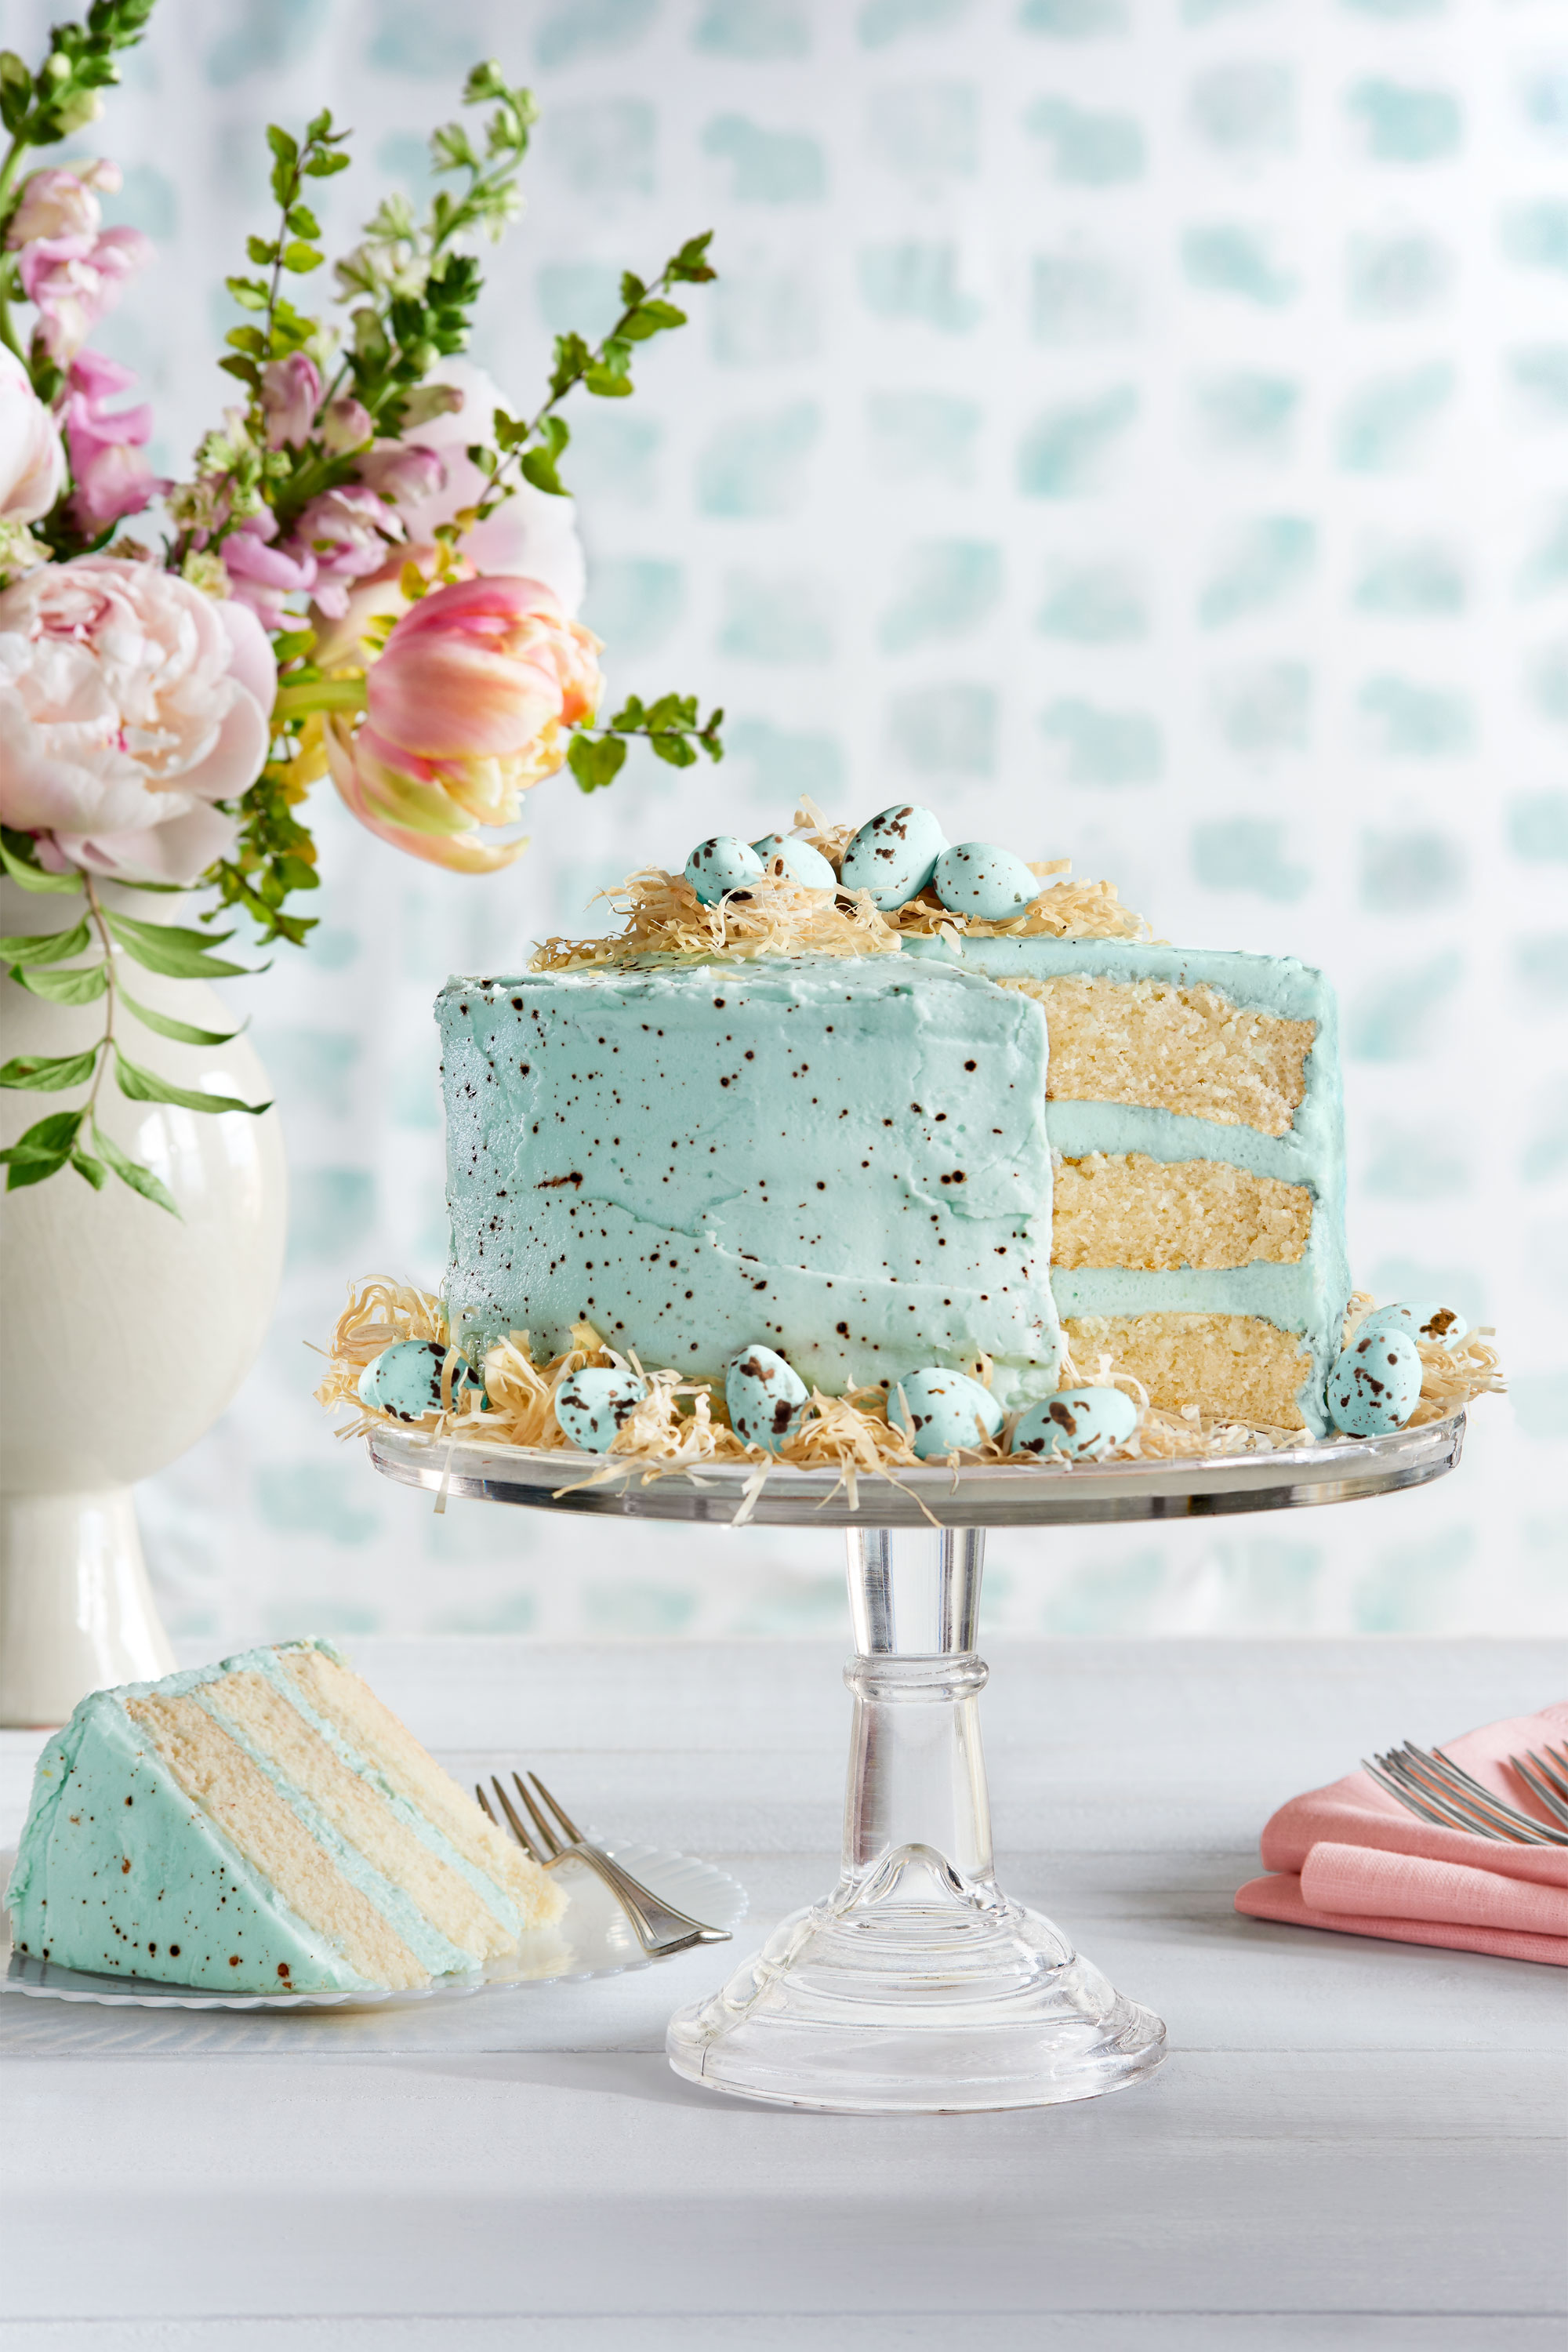 73 Easy Easter Cakes And Desserts Recipes